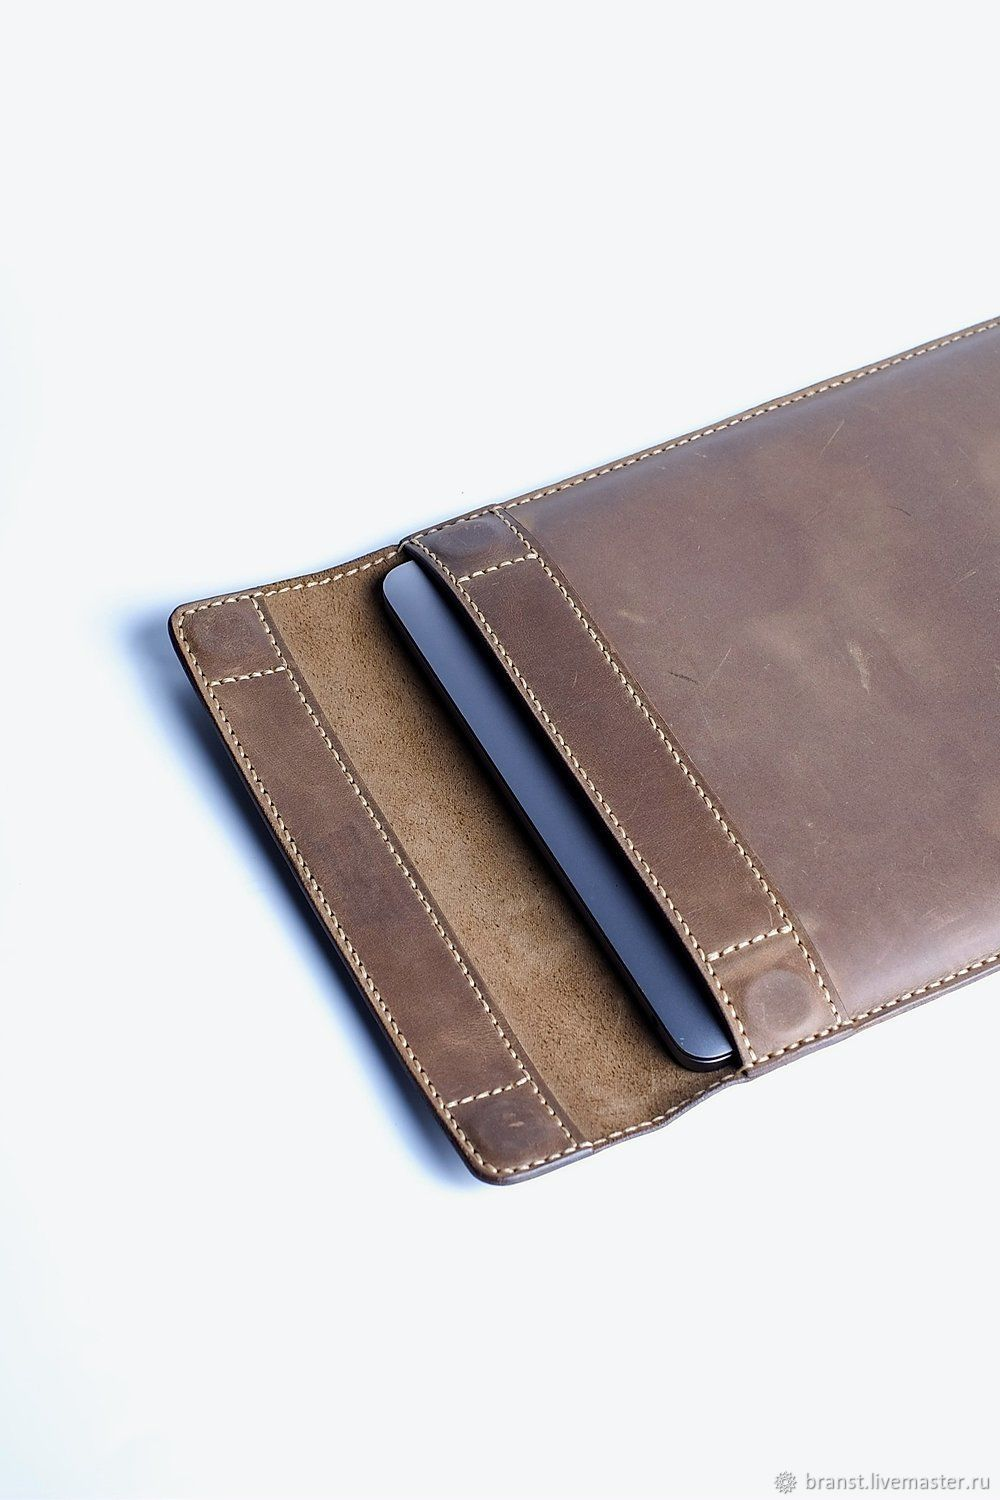 Kuga leather case with flap for laptop, Case, Makhachkala,  Фото №1